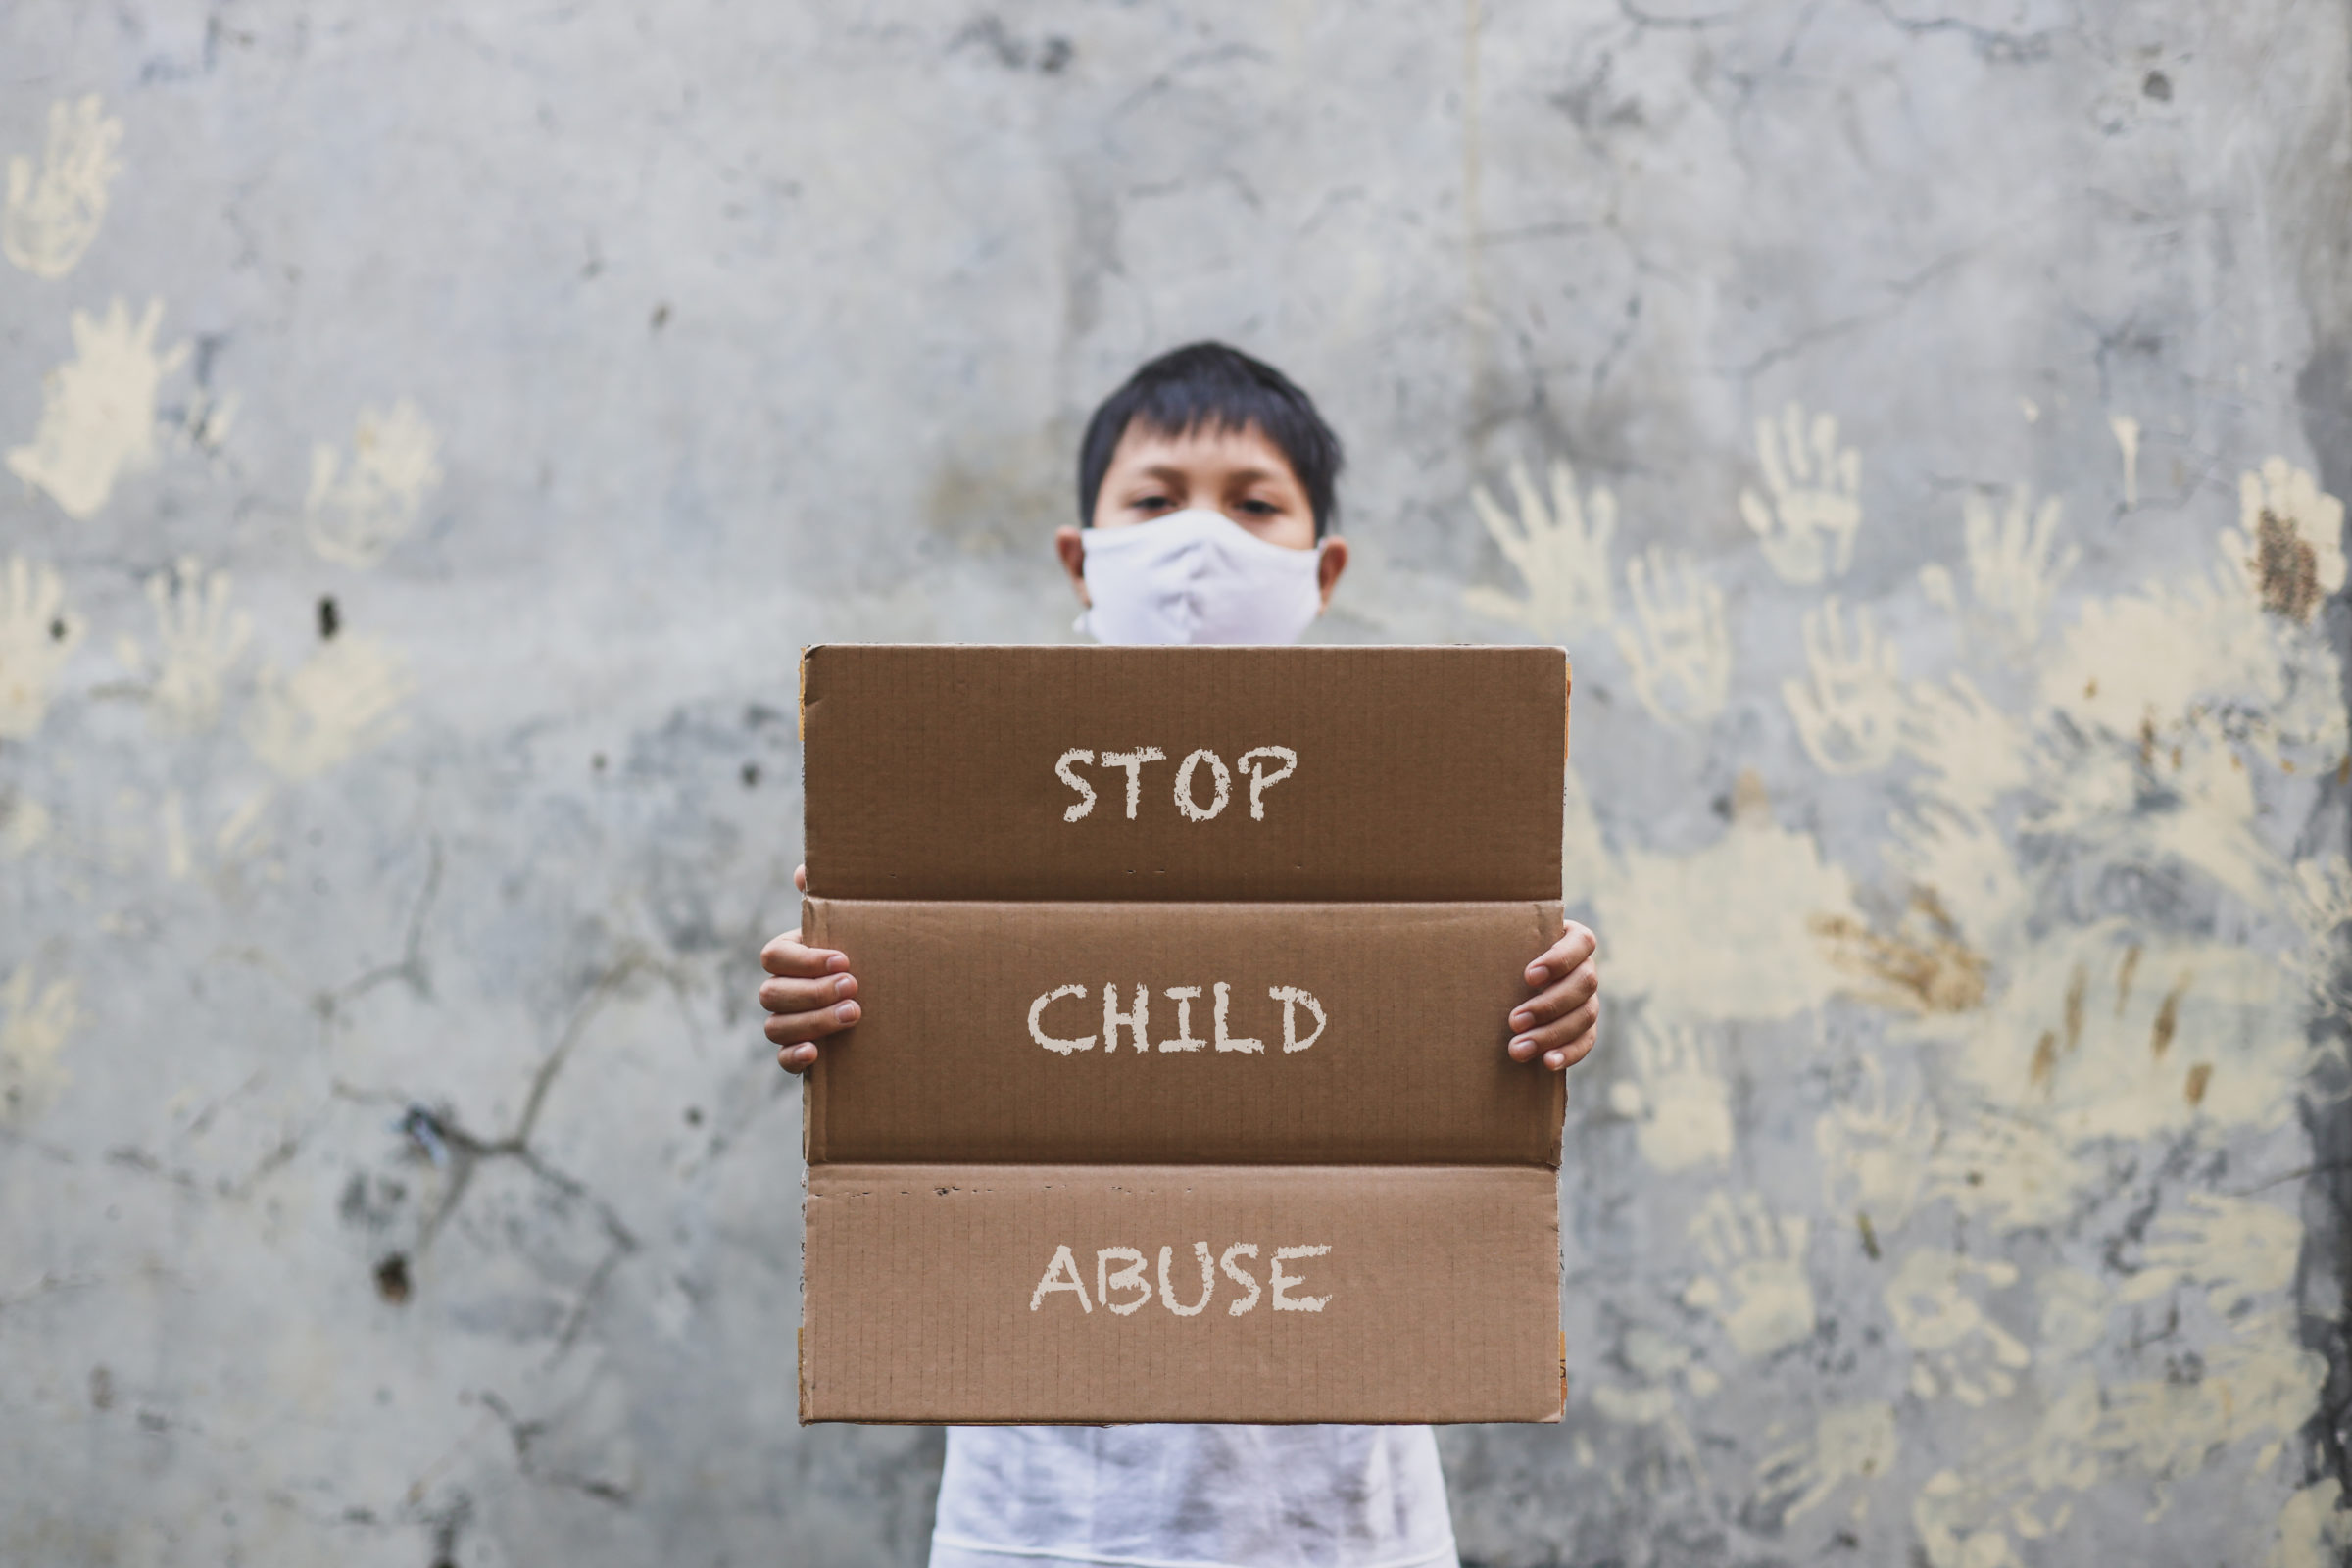 a child protest for child abuse YE4VRNW